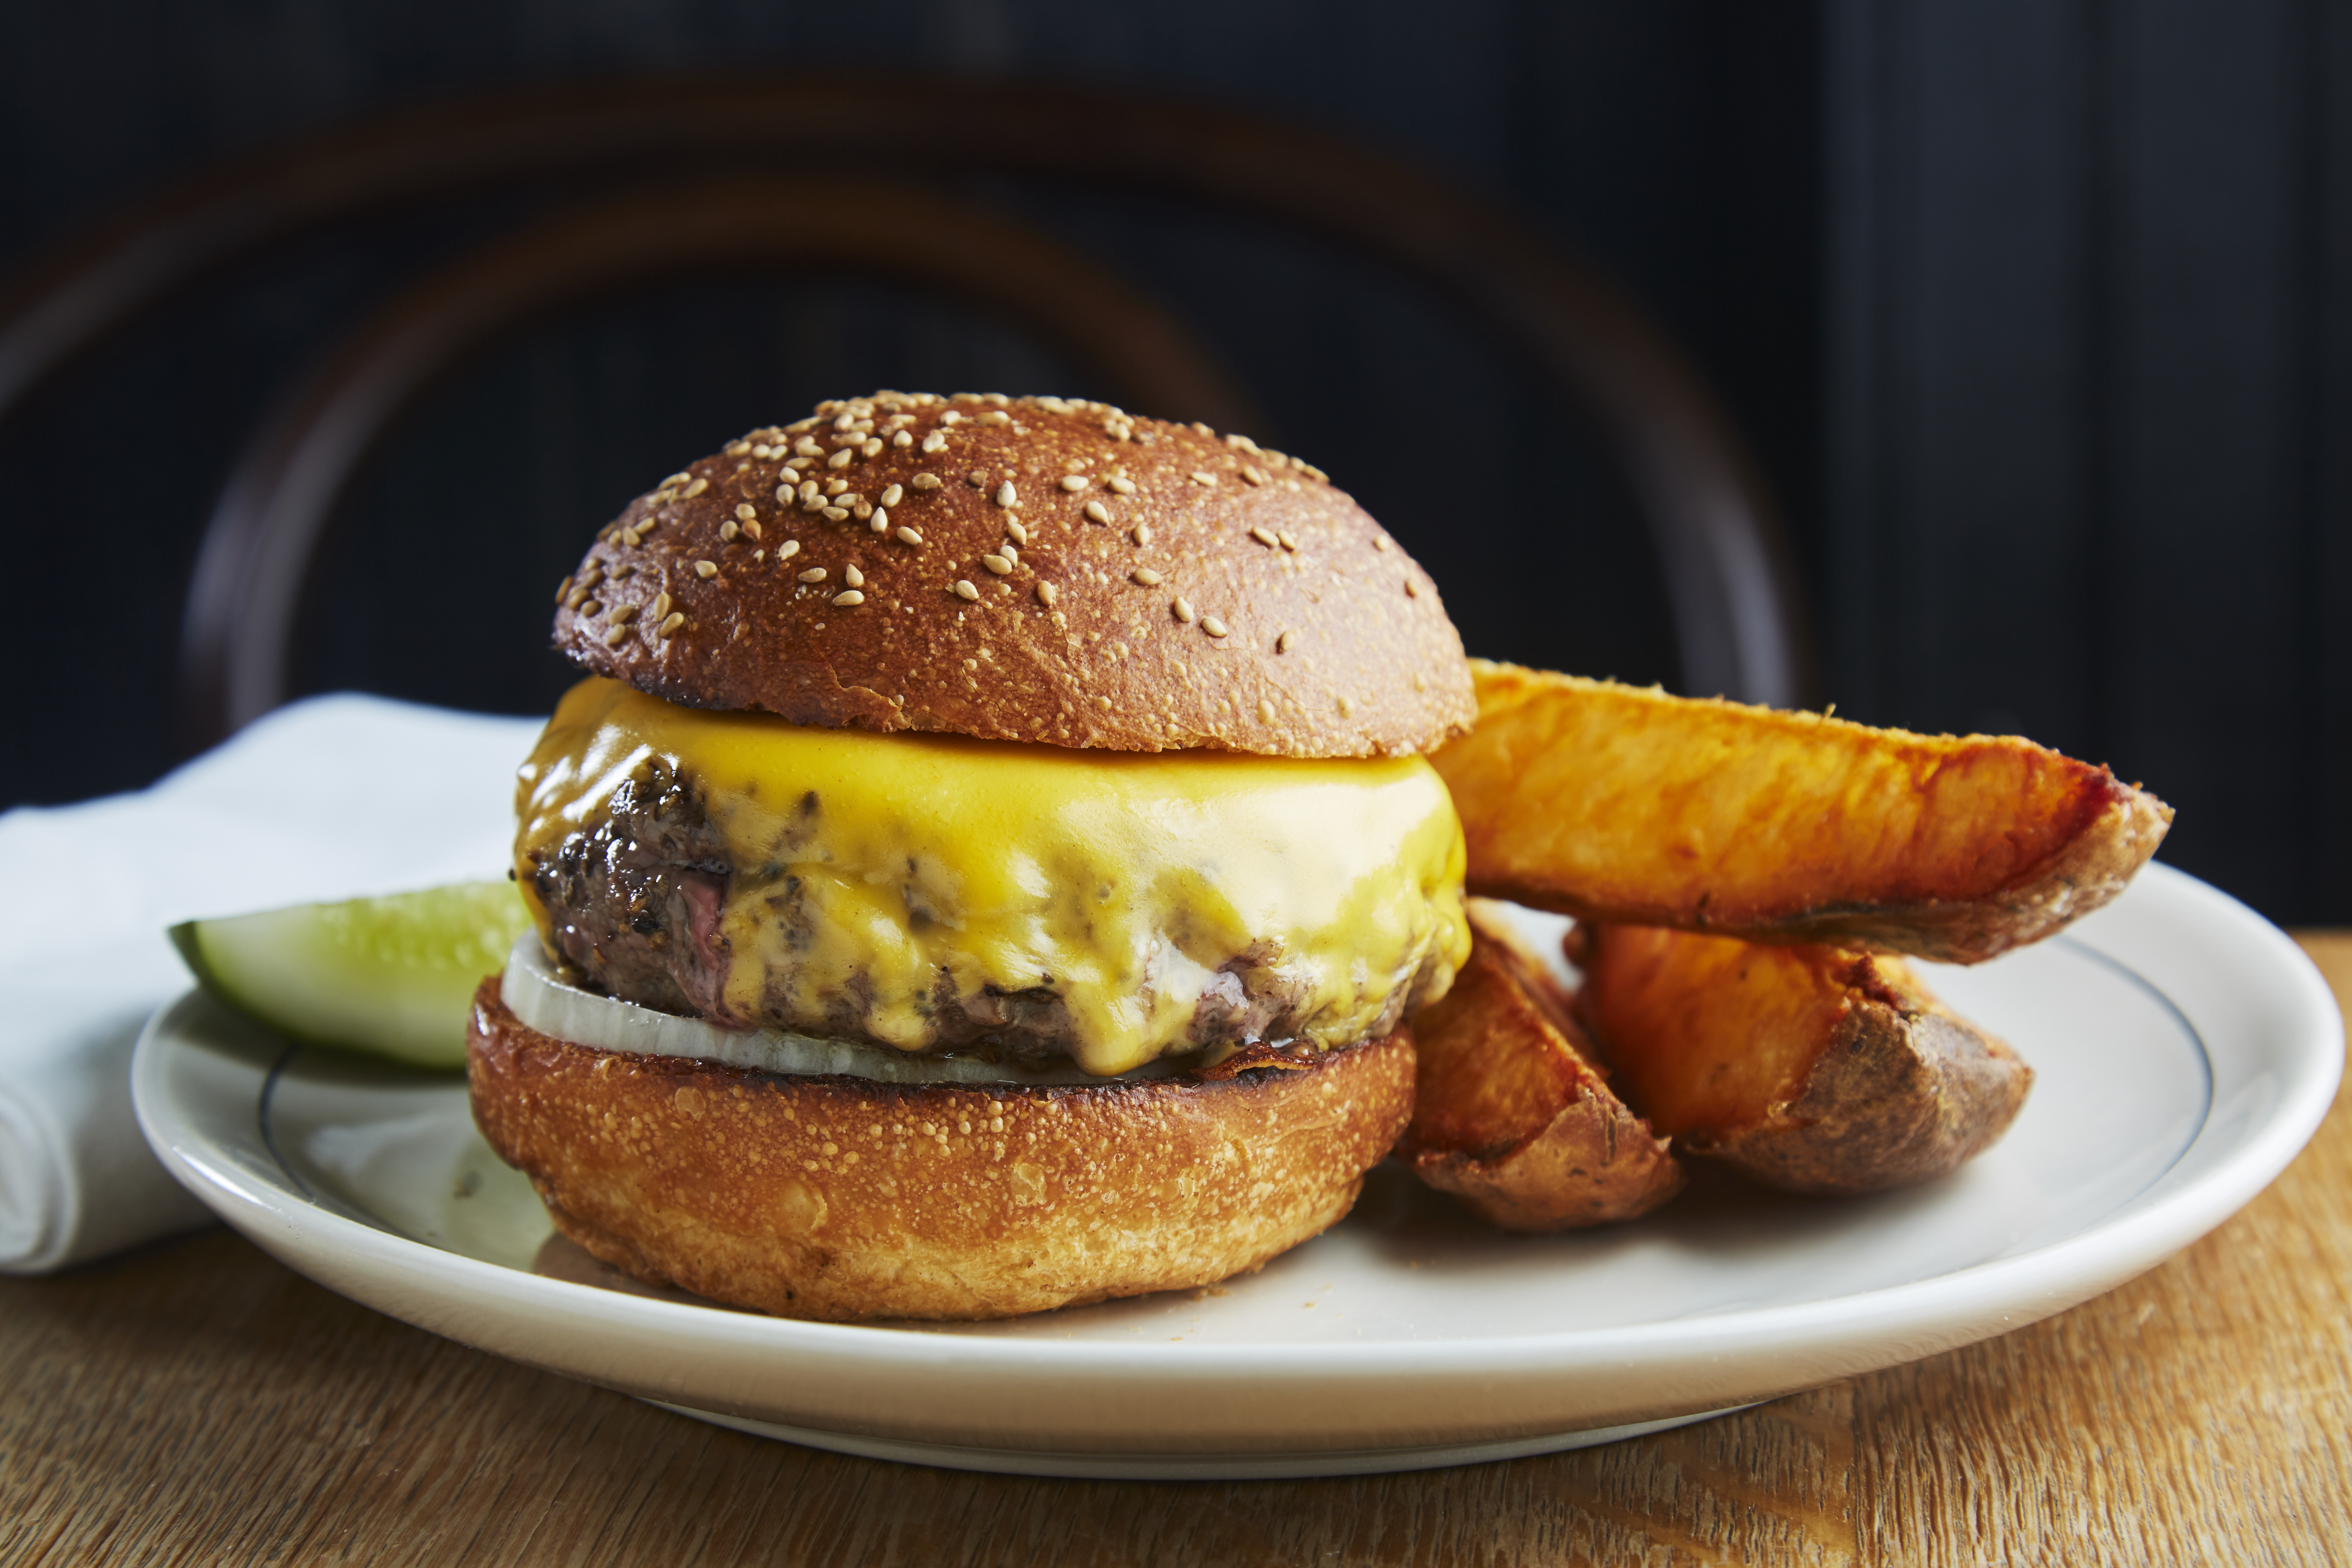 The Red Hook Tavern burger, American cheese melting down the side, sits on a white plate next to three wedge fries